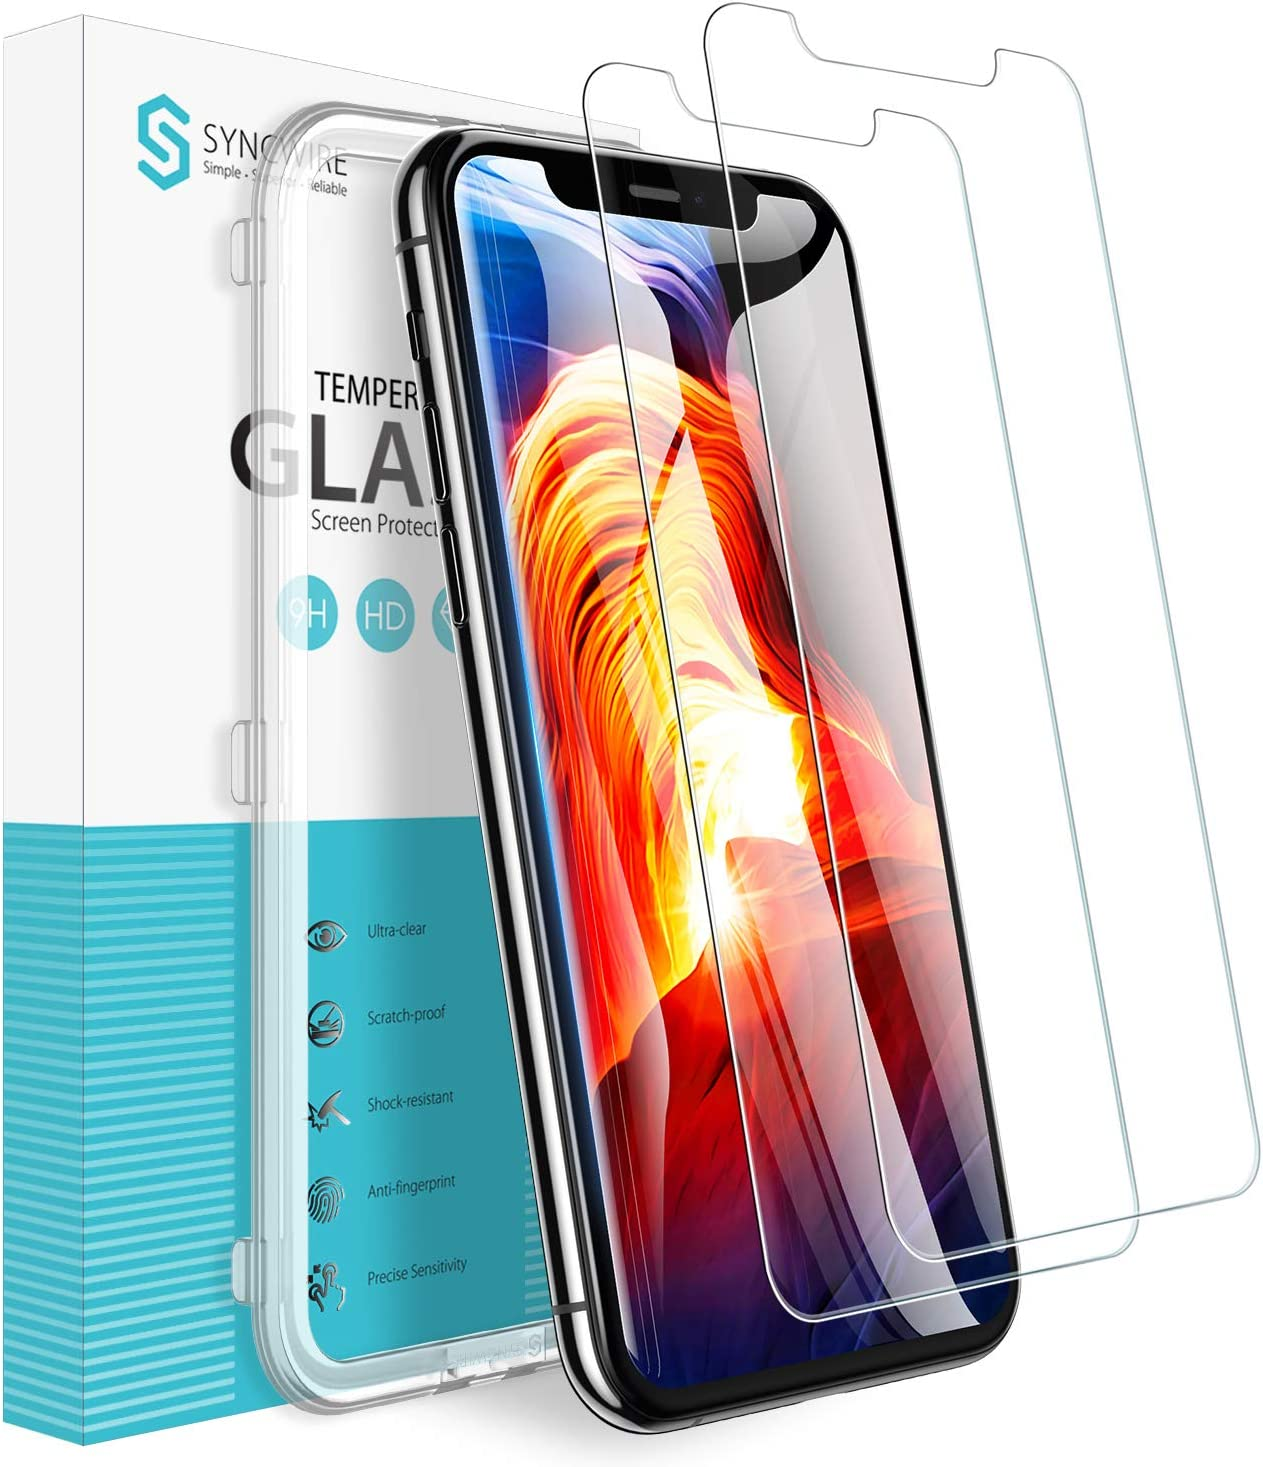 Syncwire Screen Protector for iPhone 11 Pro, iPhone Xs & iPhone X (2 Pack), Anti-Fingerprint Tempered Glass for iPhone 11 Pro/XS/X/10 (9H Hardness, Installation Frame, Bubble Free) [Not Edge to Edge]